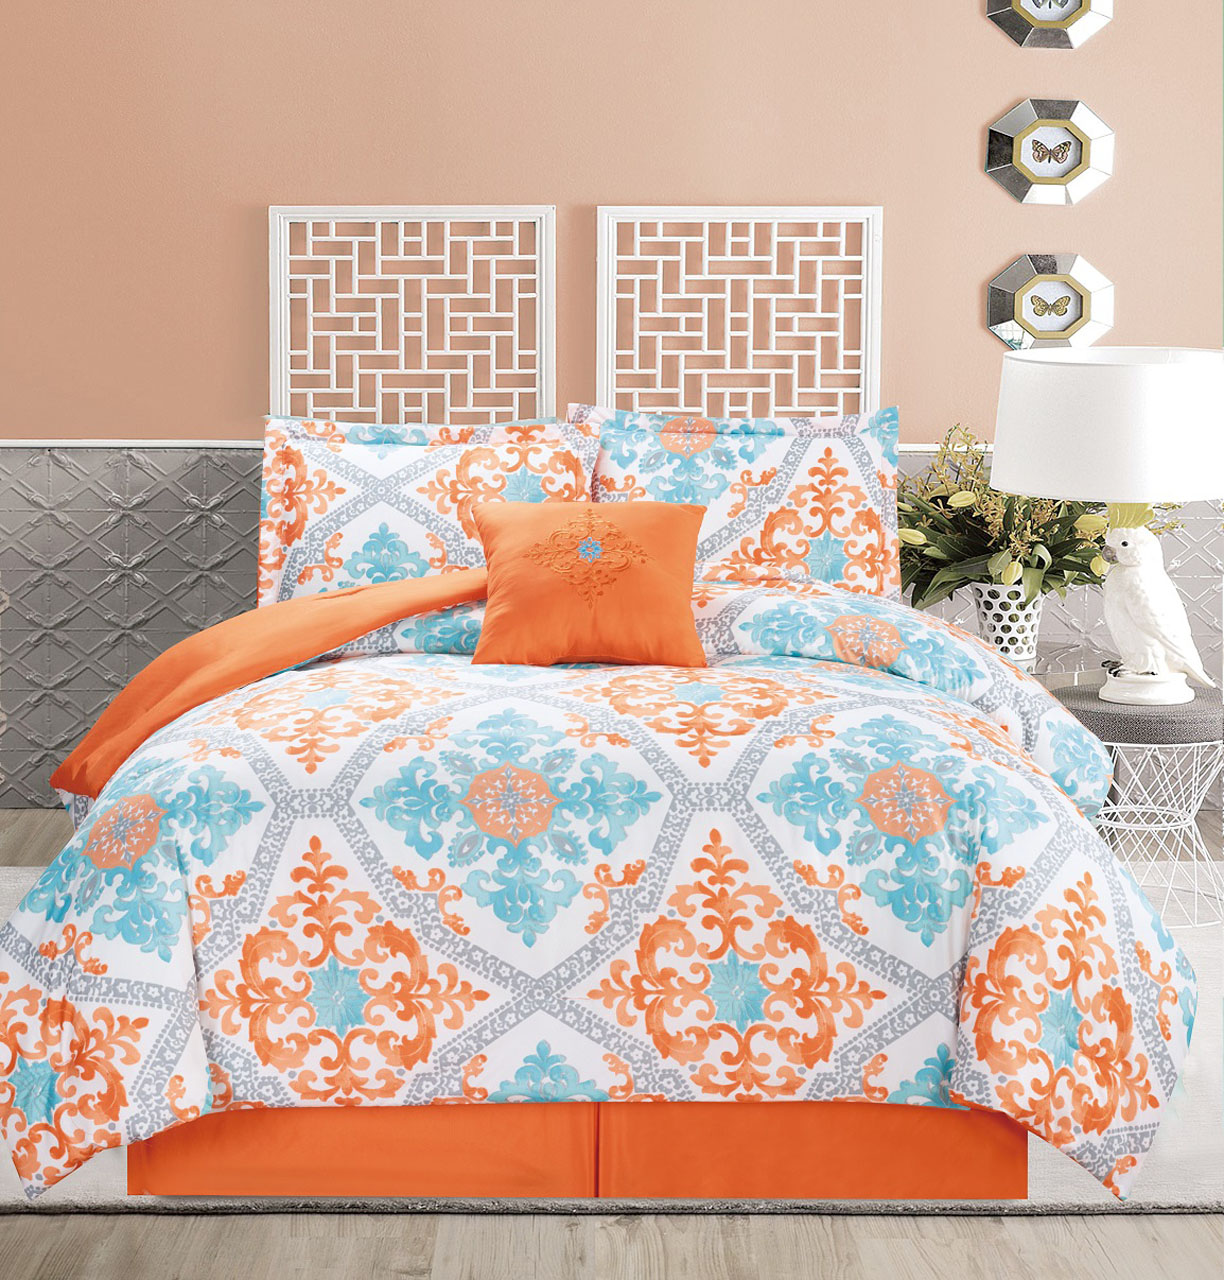 Ordinaire 5 Piece Regal Orange/Blue/White Comforter Set   Walmart.com